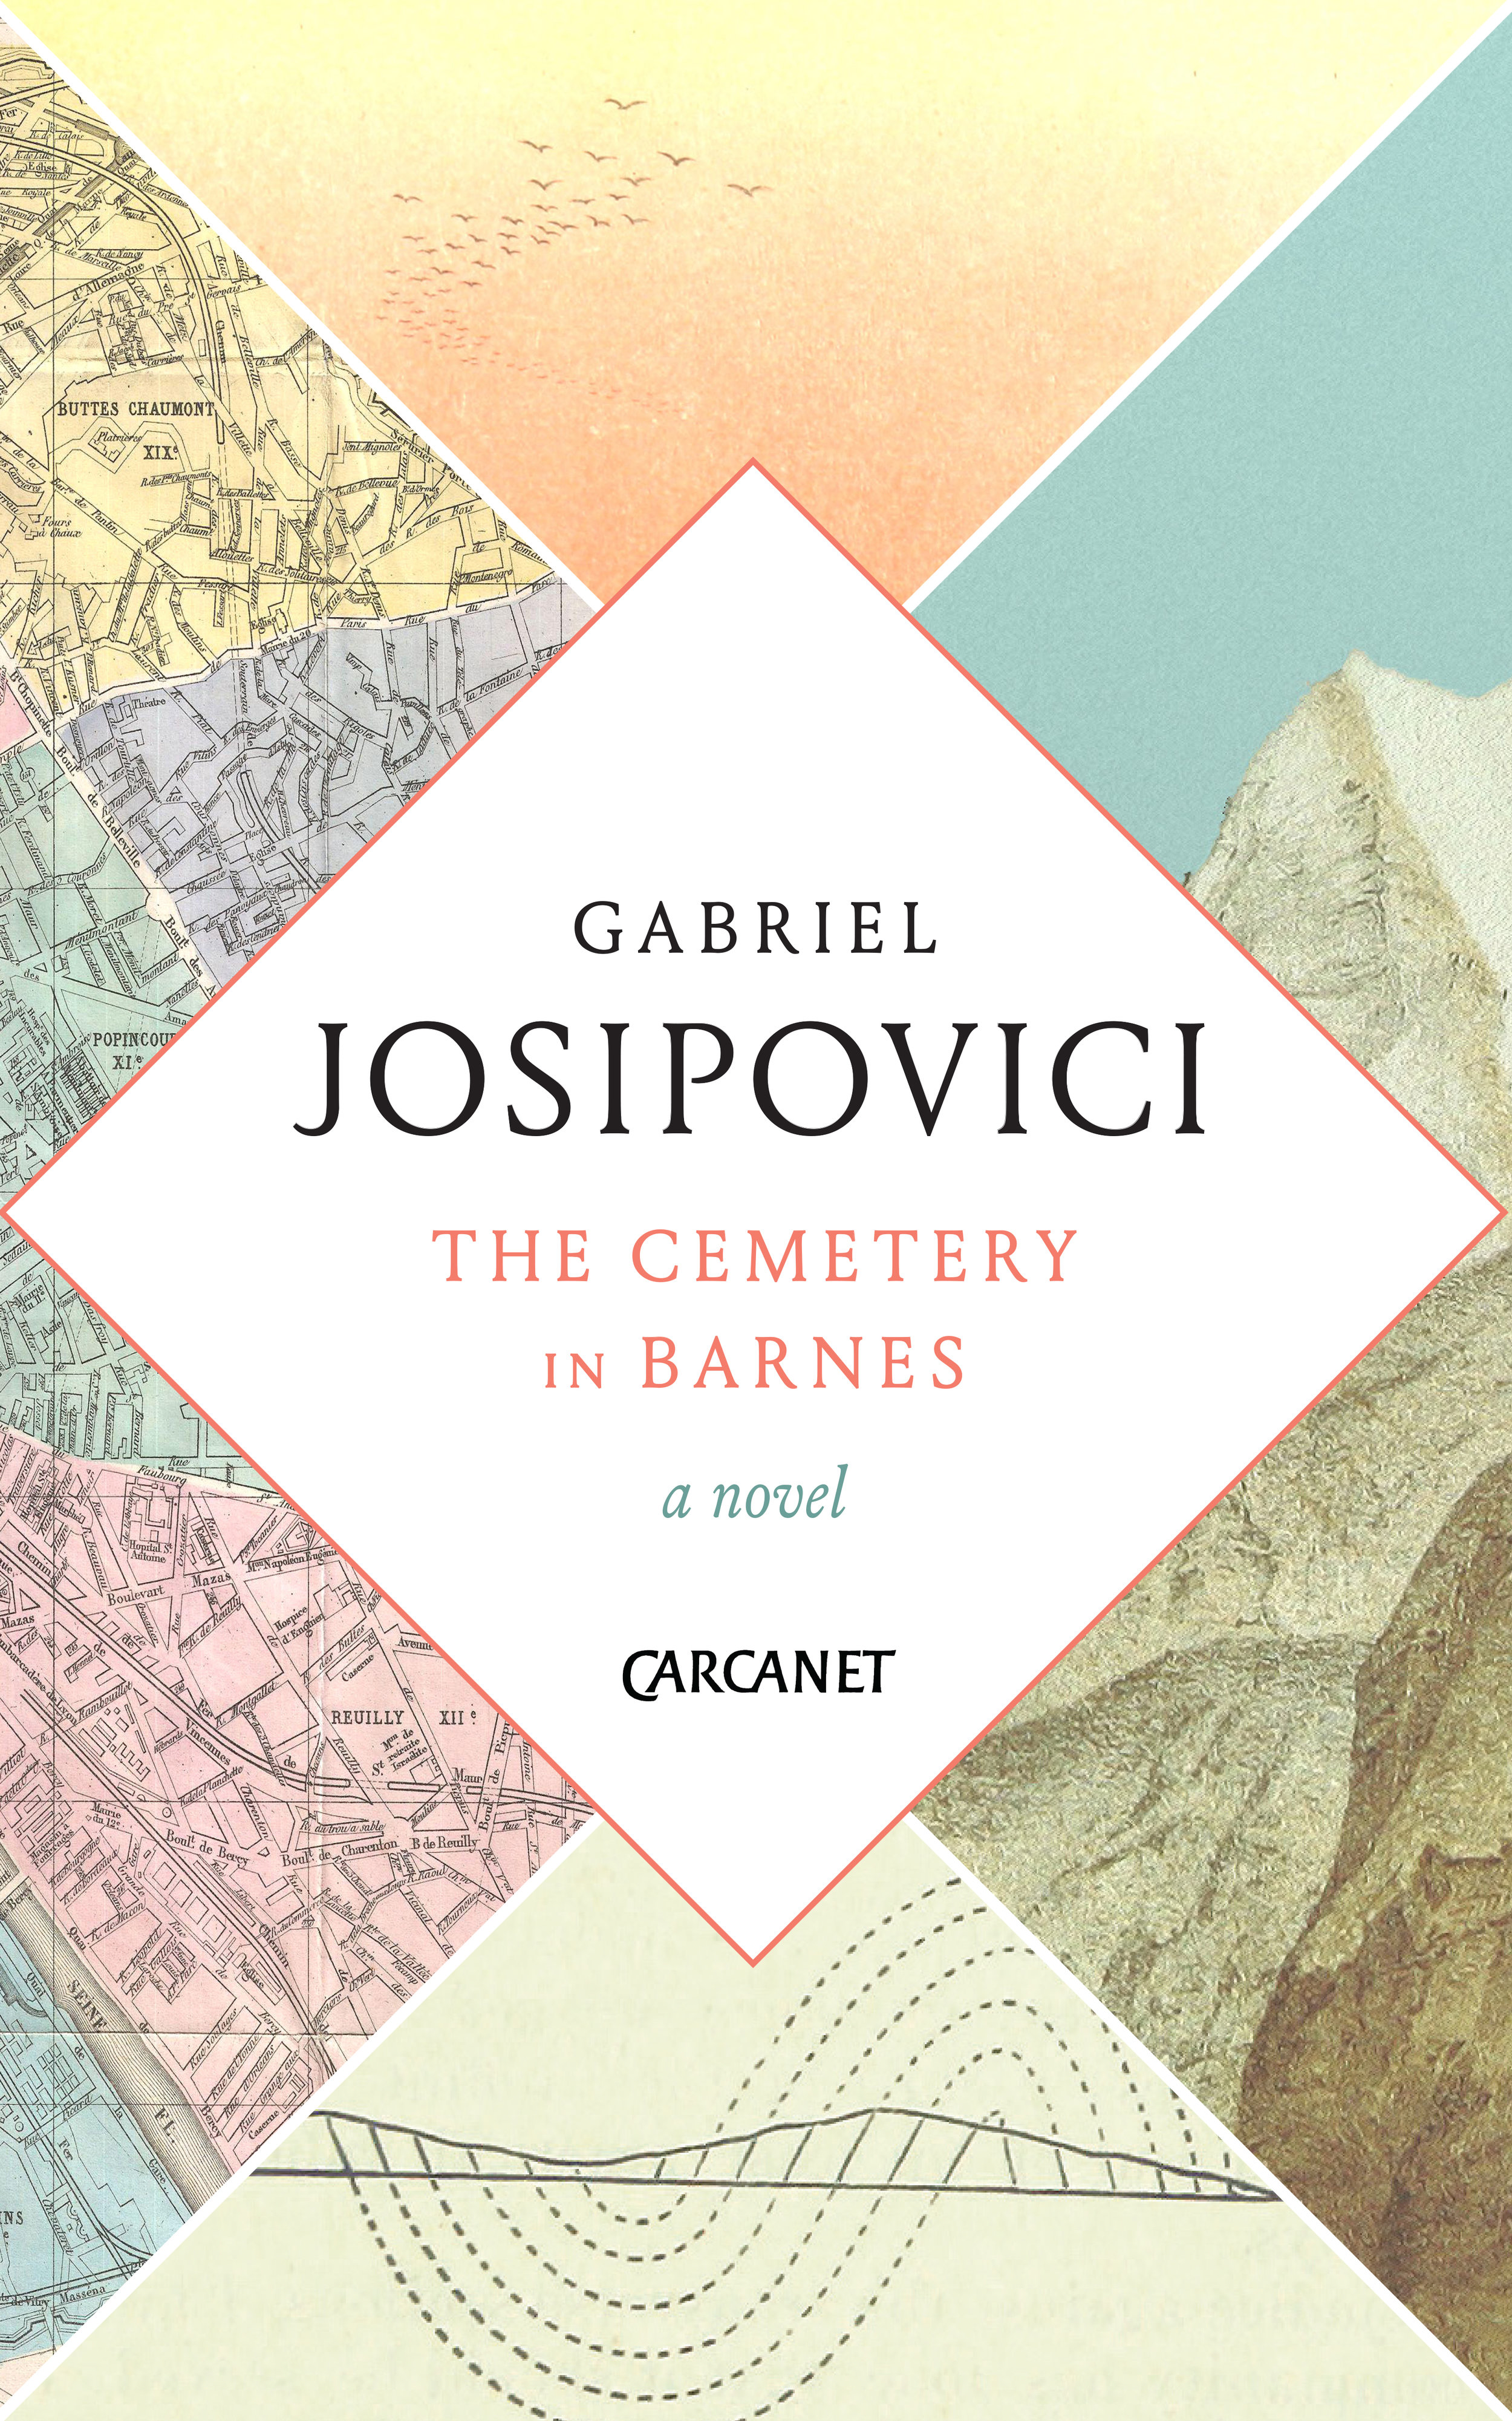 The Cemetery in Barnes by Gabriel Josipovici, Carcanet